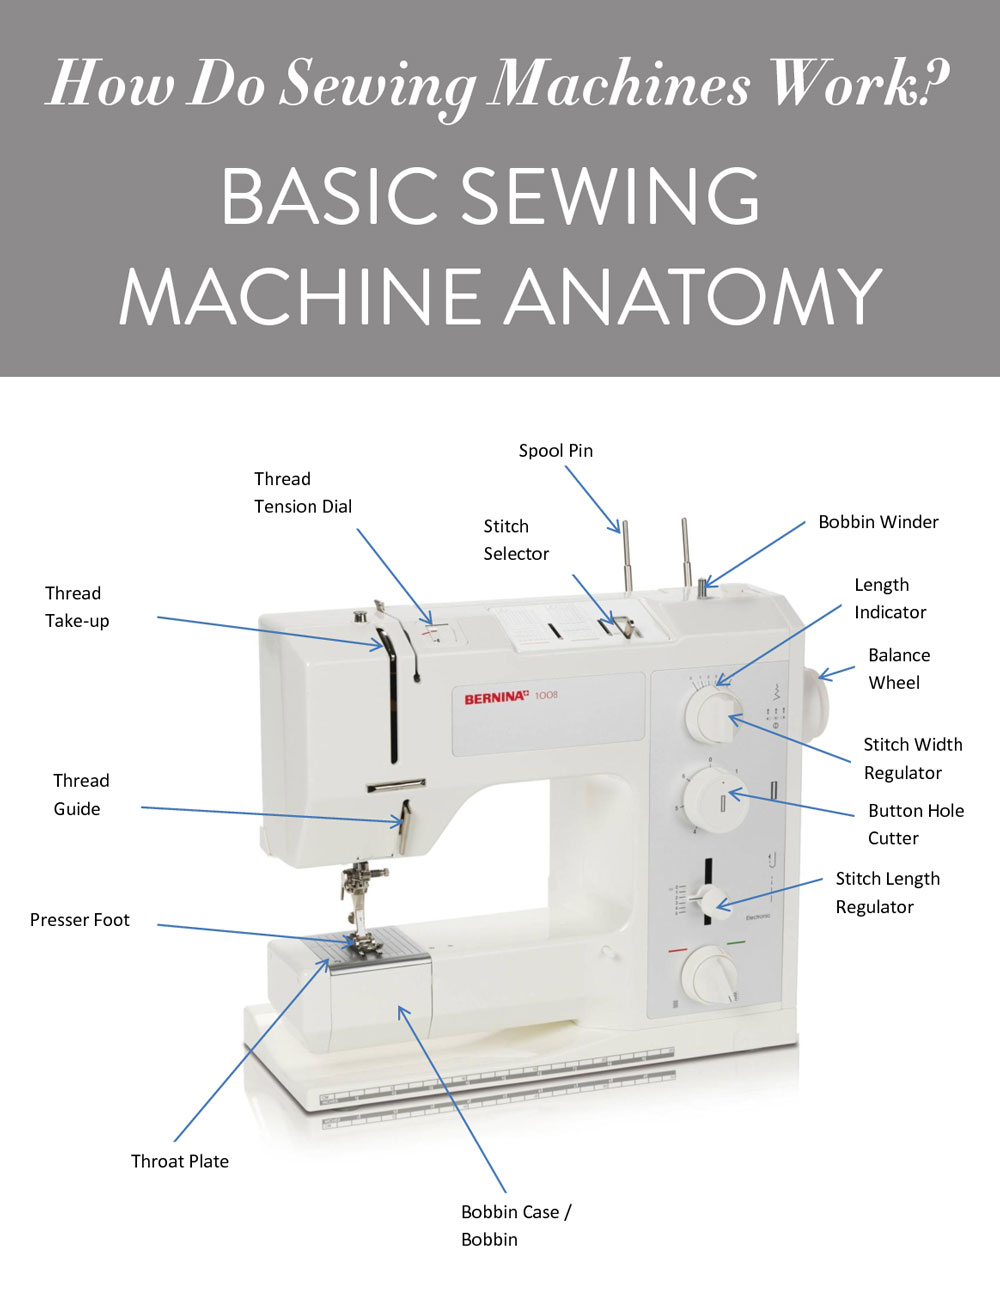 Sewing-Machines-Work